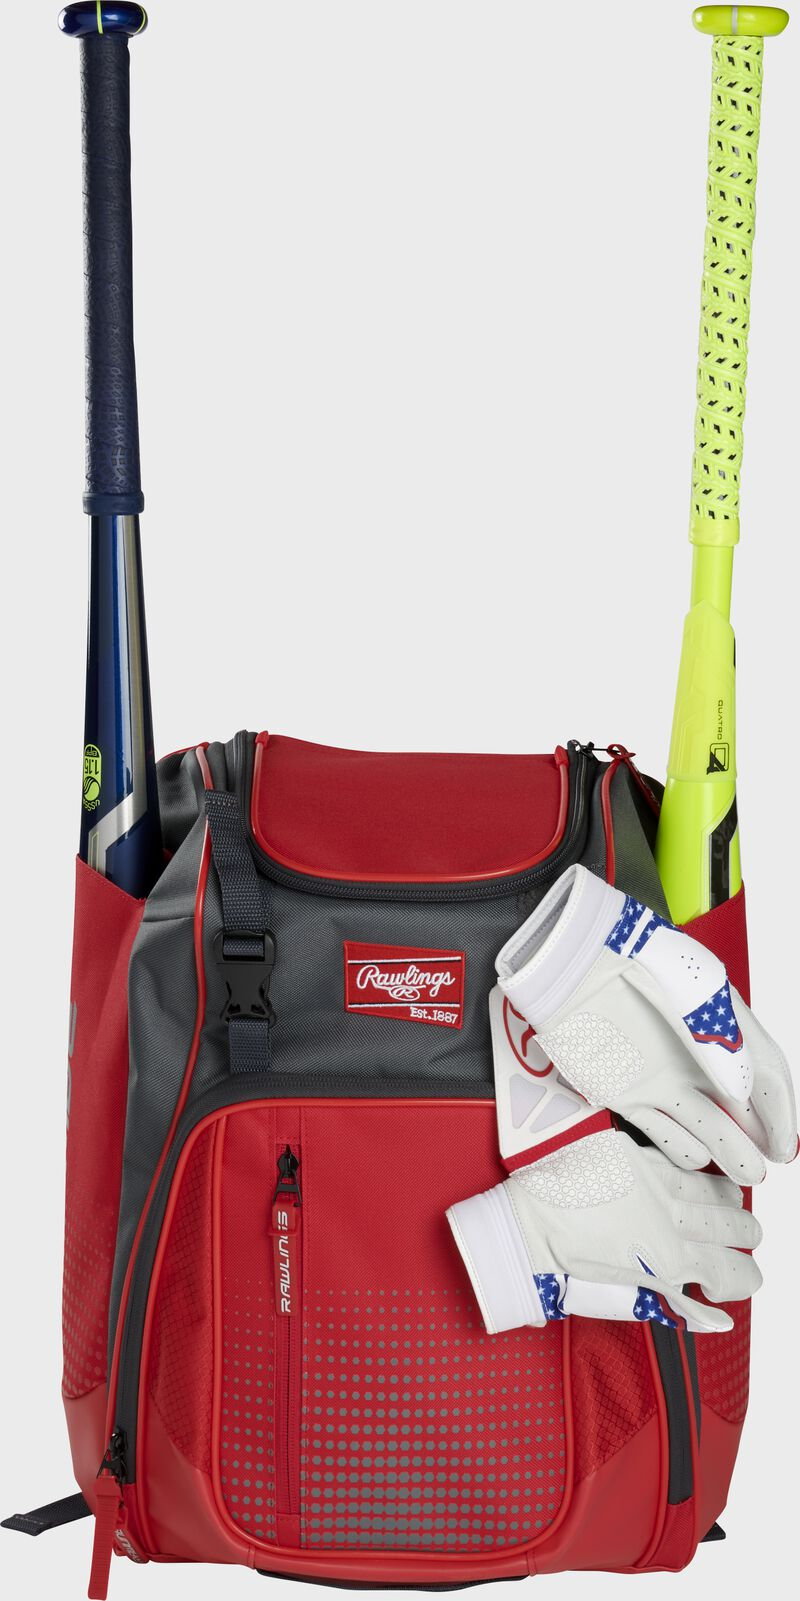 A scarlet Franchise backpack with two bats in the sides and batting gloves on the front Velcro strap - SKU: FRANBP-S